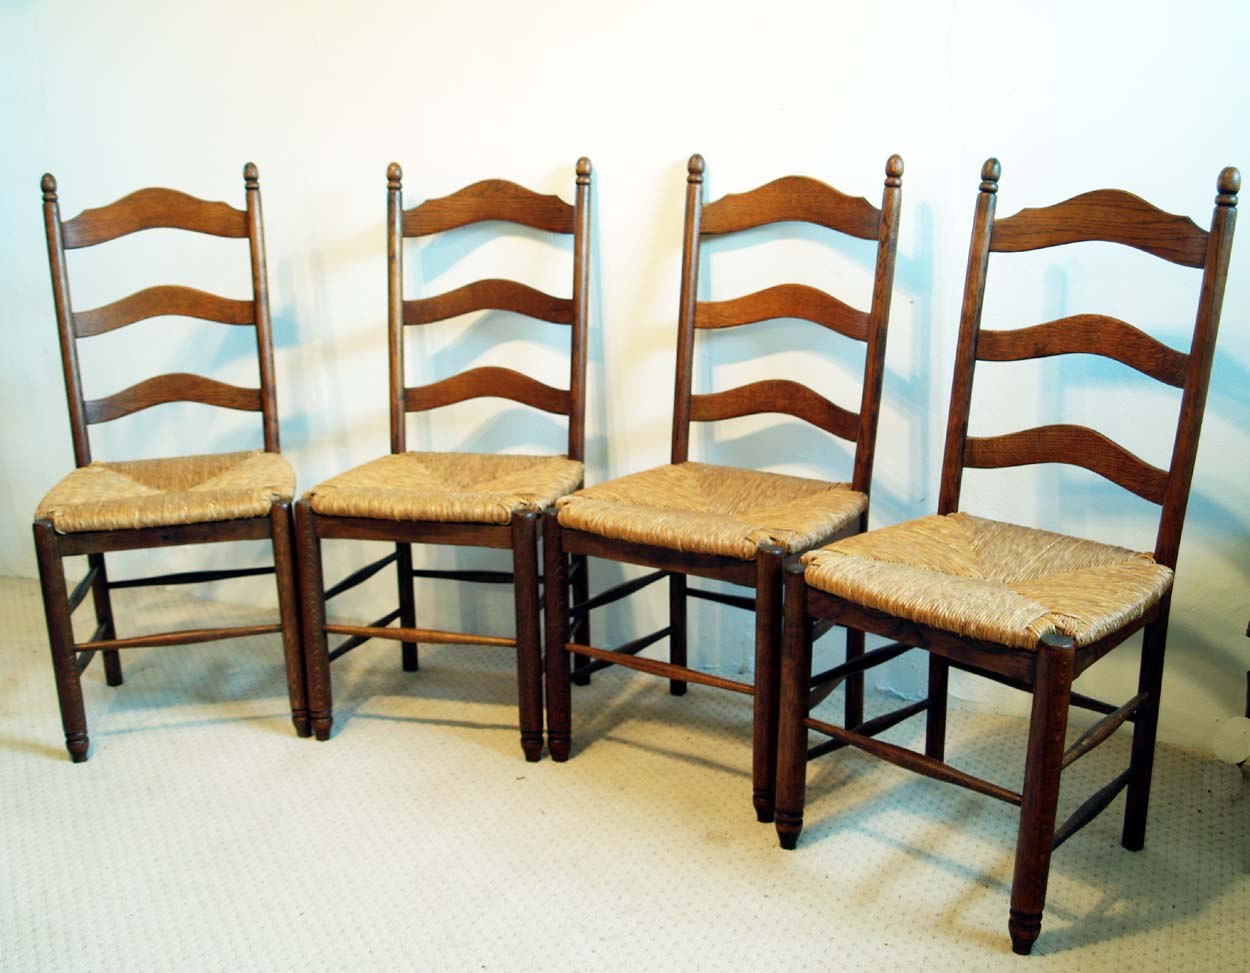 French antique shaker style chairs set of 4 - Shop Luxury Antique Vintage French Chair - Wildwoodantiques.co.uk